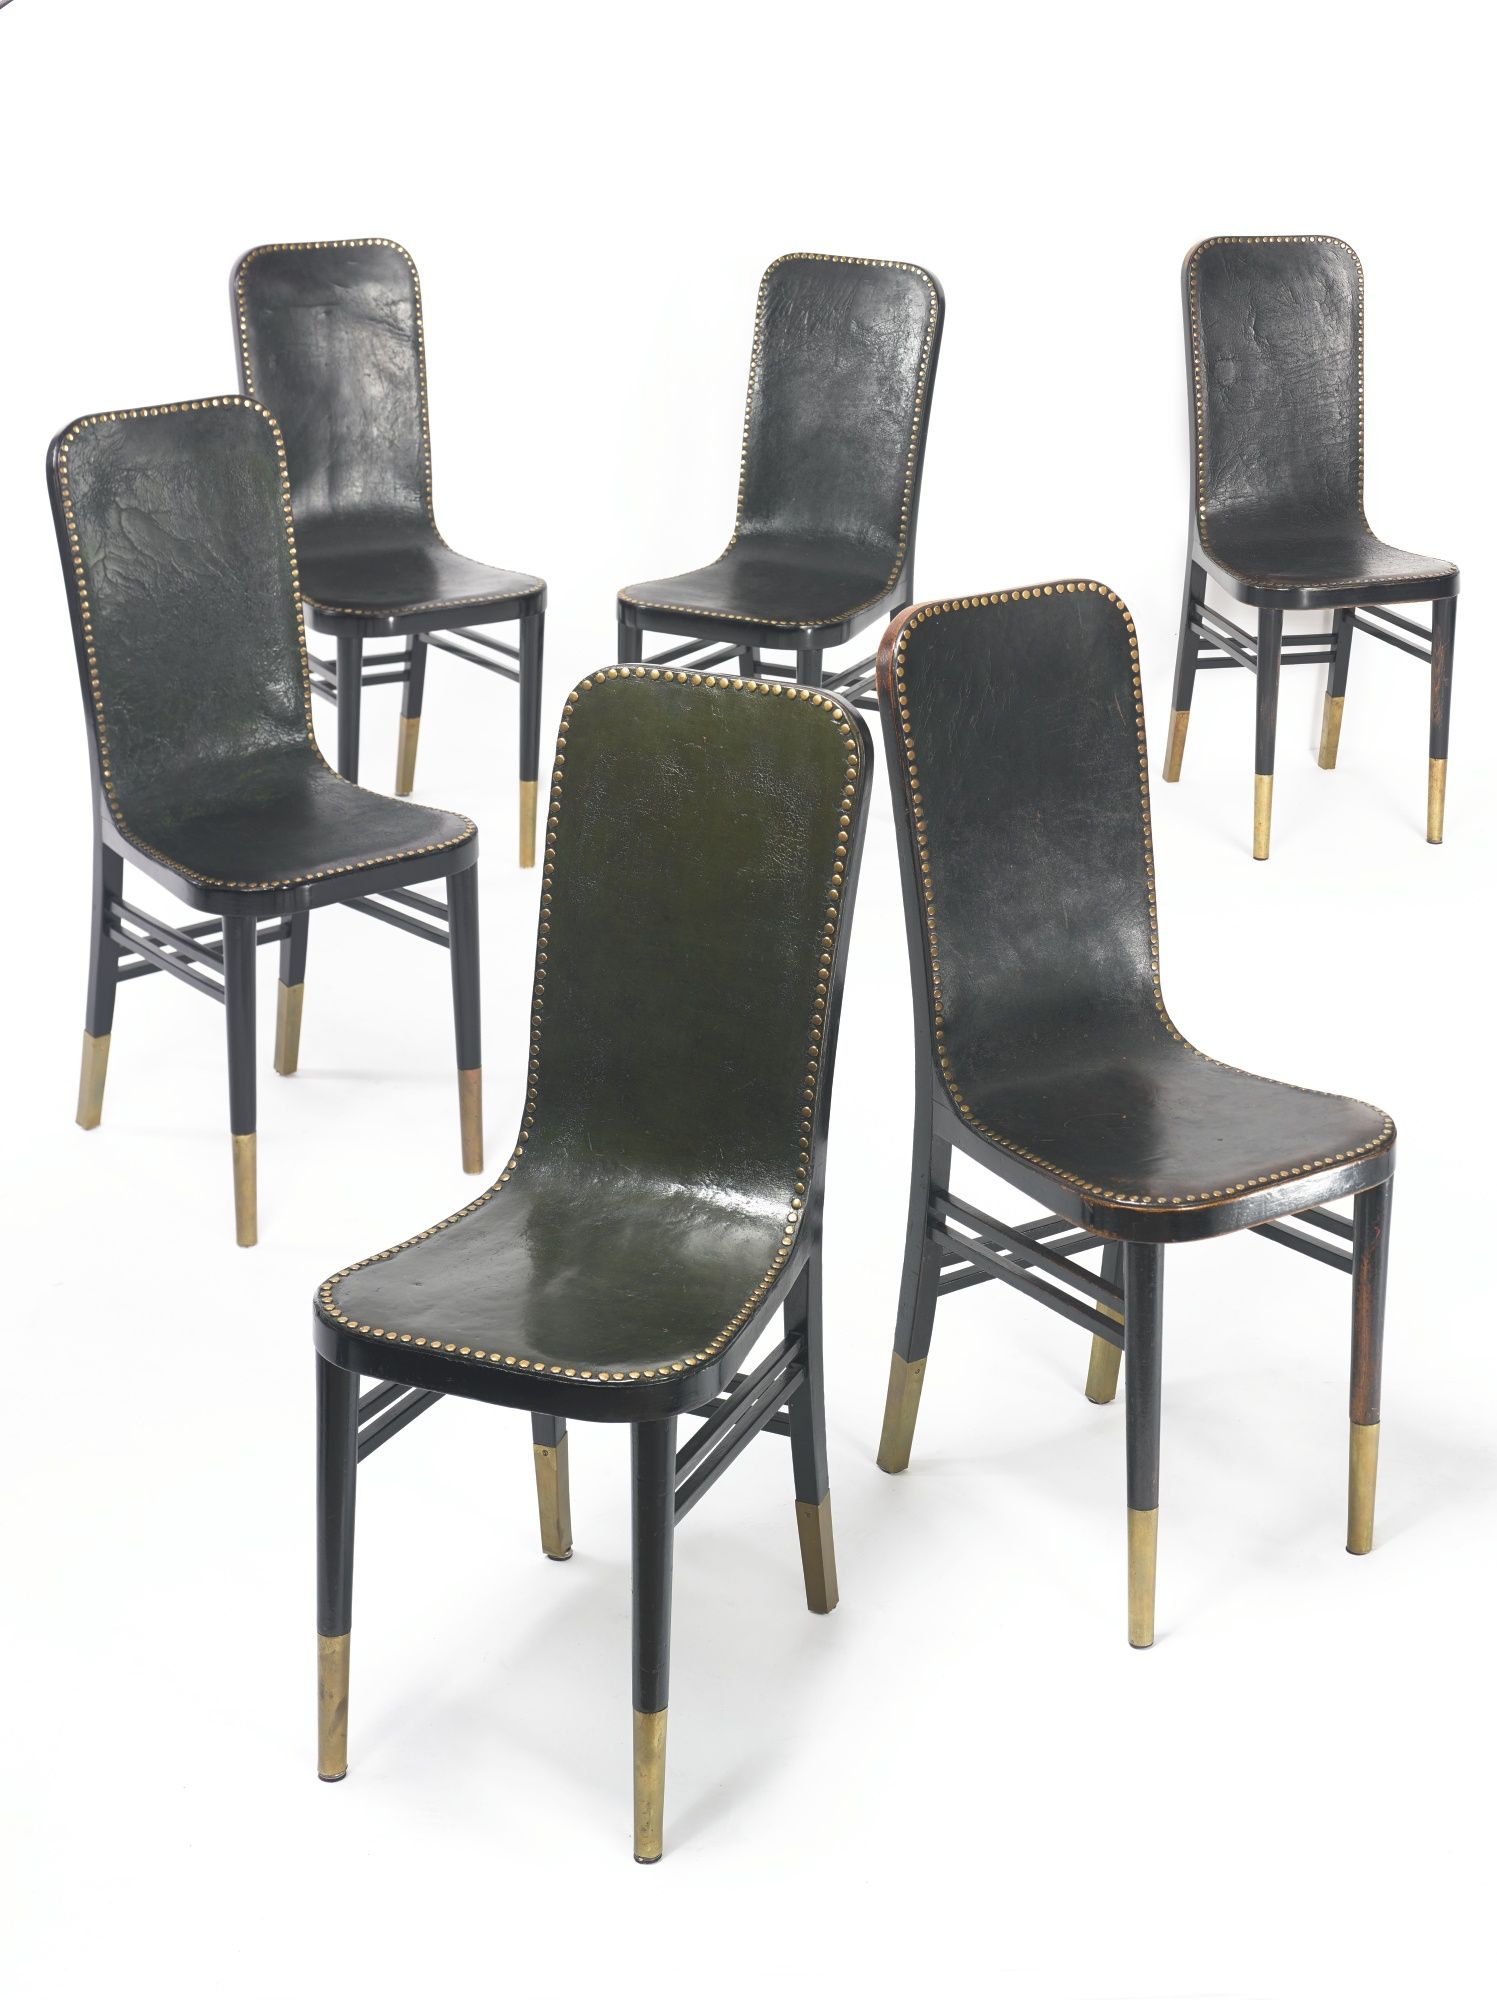 Josef Urban Lacquered Wood Brass and Leather Dining Chairs for